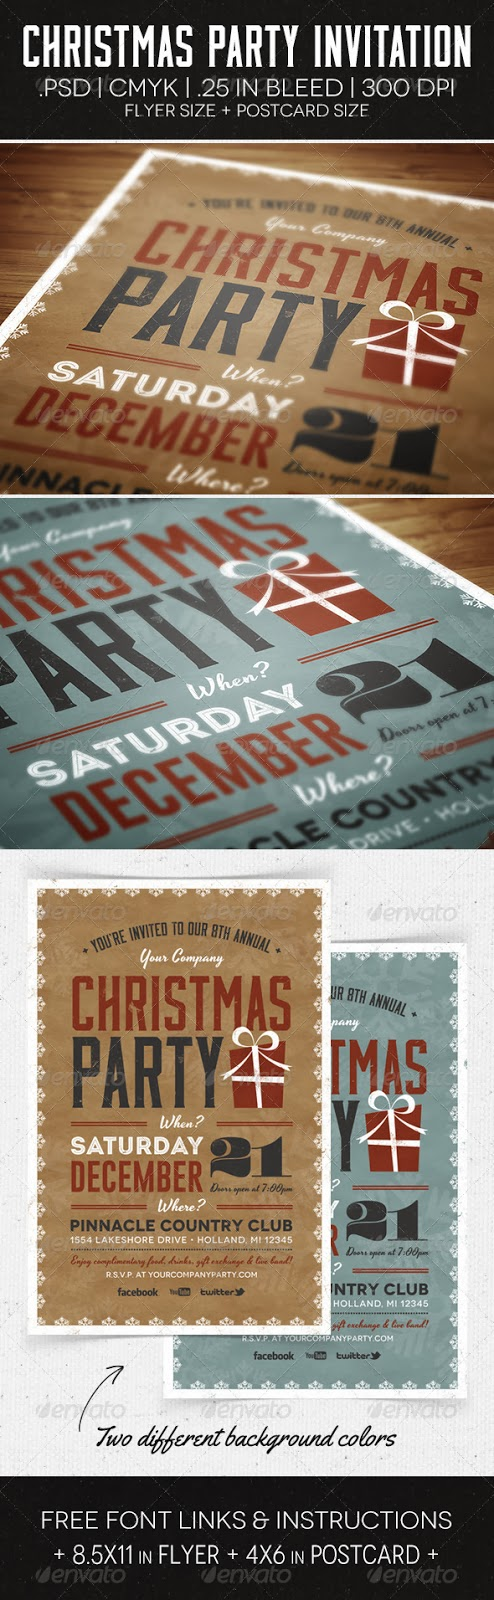 graphicriver.net/item/christmas-party-flyer-invitation/6176445?ref=creapack